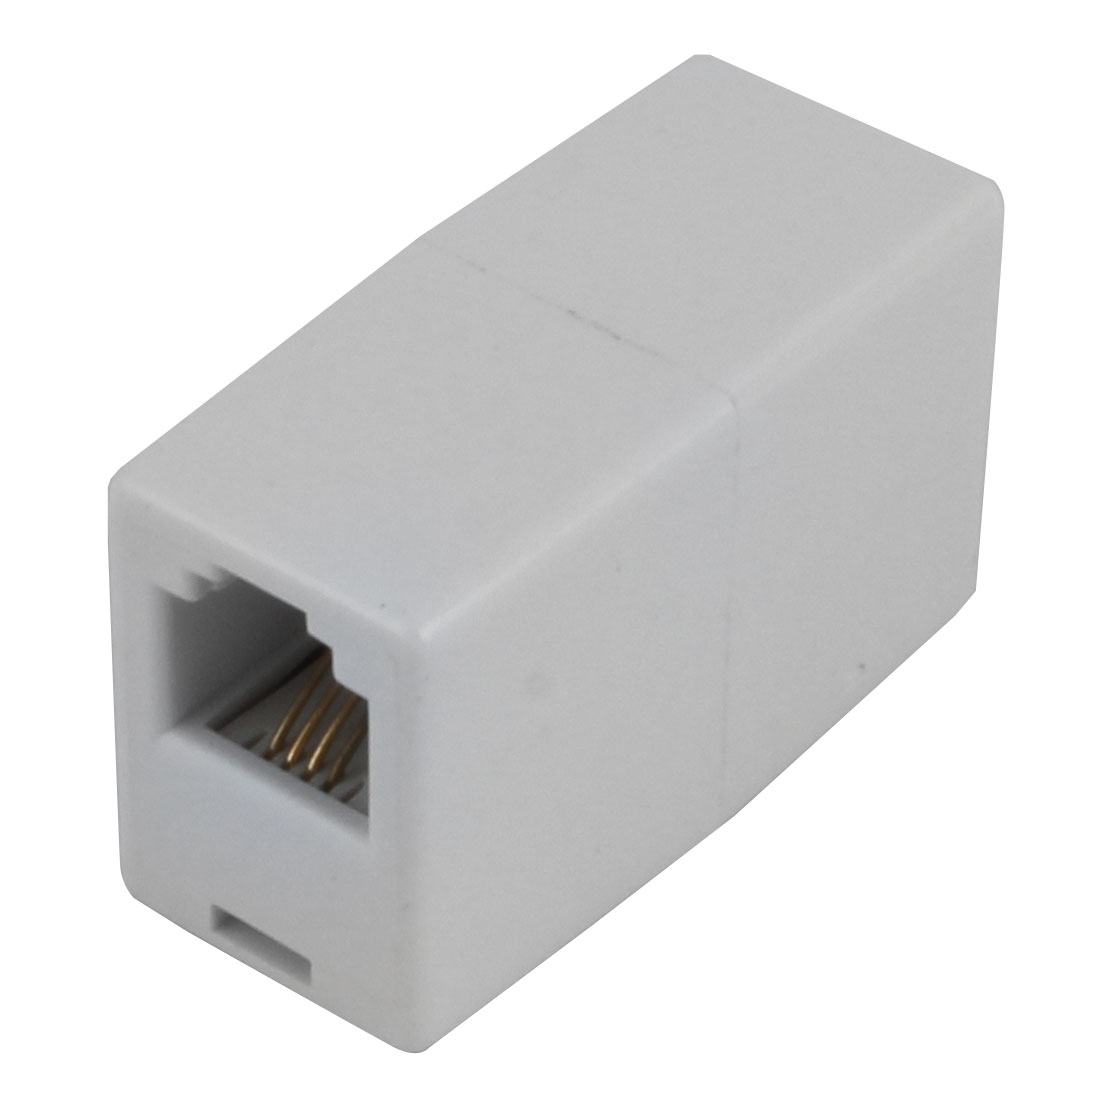 RJ11 6P4C Fax Telephone Straight Coupler Connector Extender Adapter